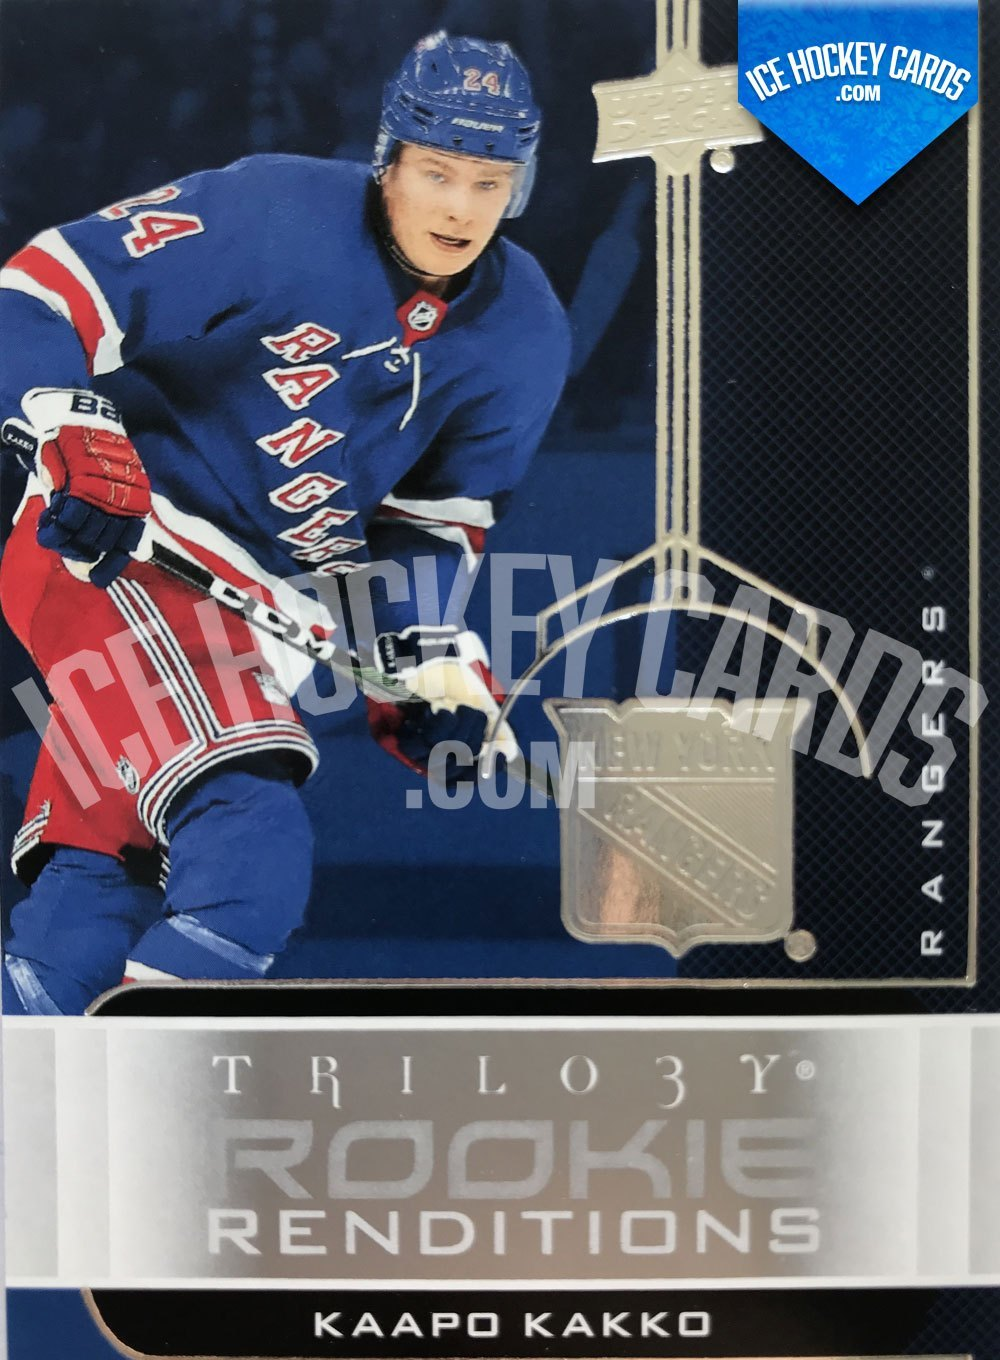 Upper Deck - Trilogy 19-20 - Kaapo Kakko Rookie Renditions